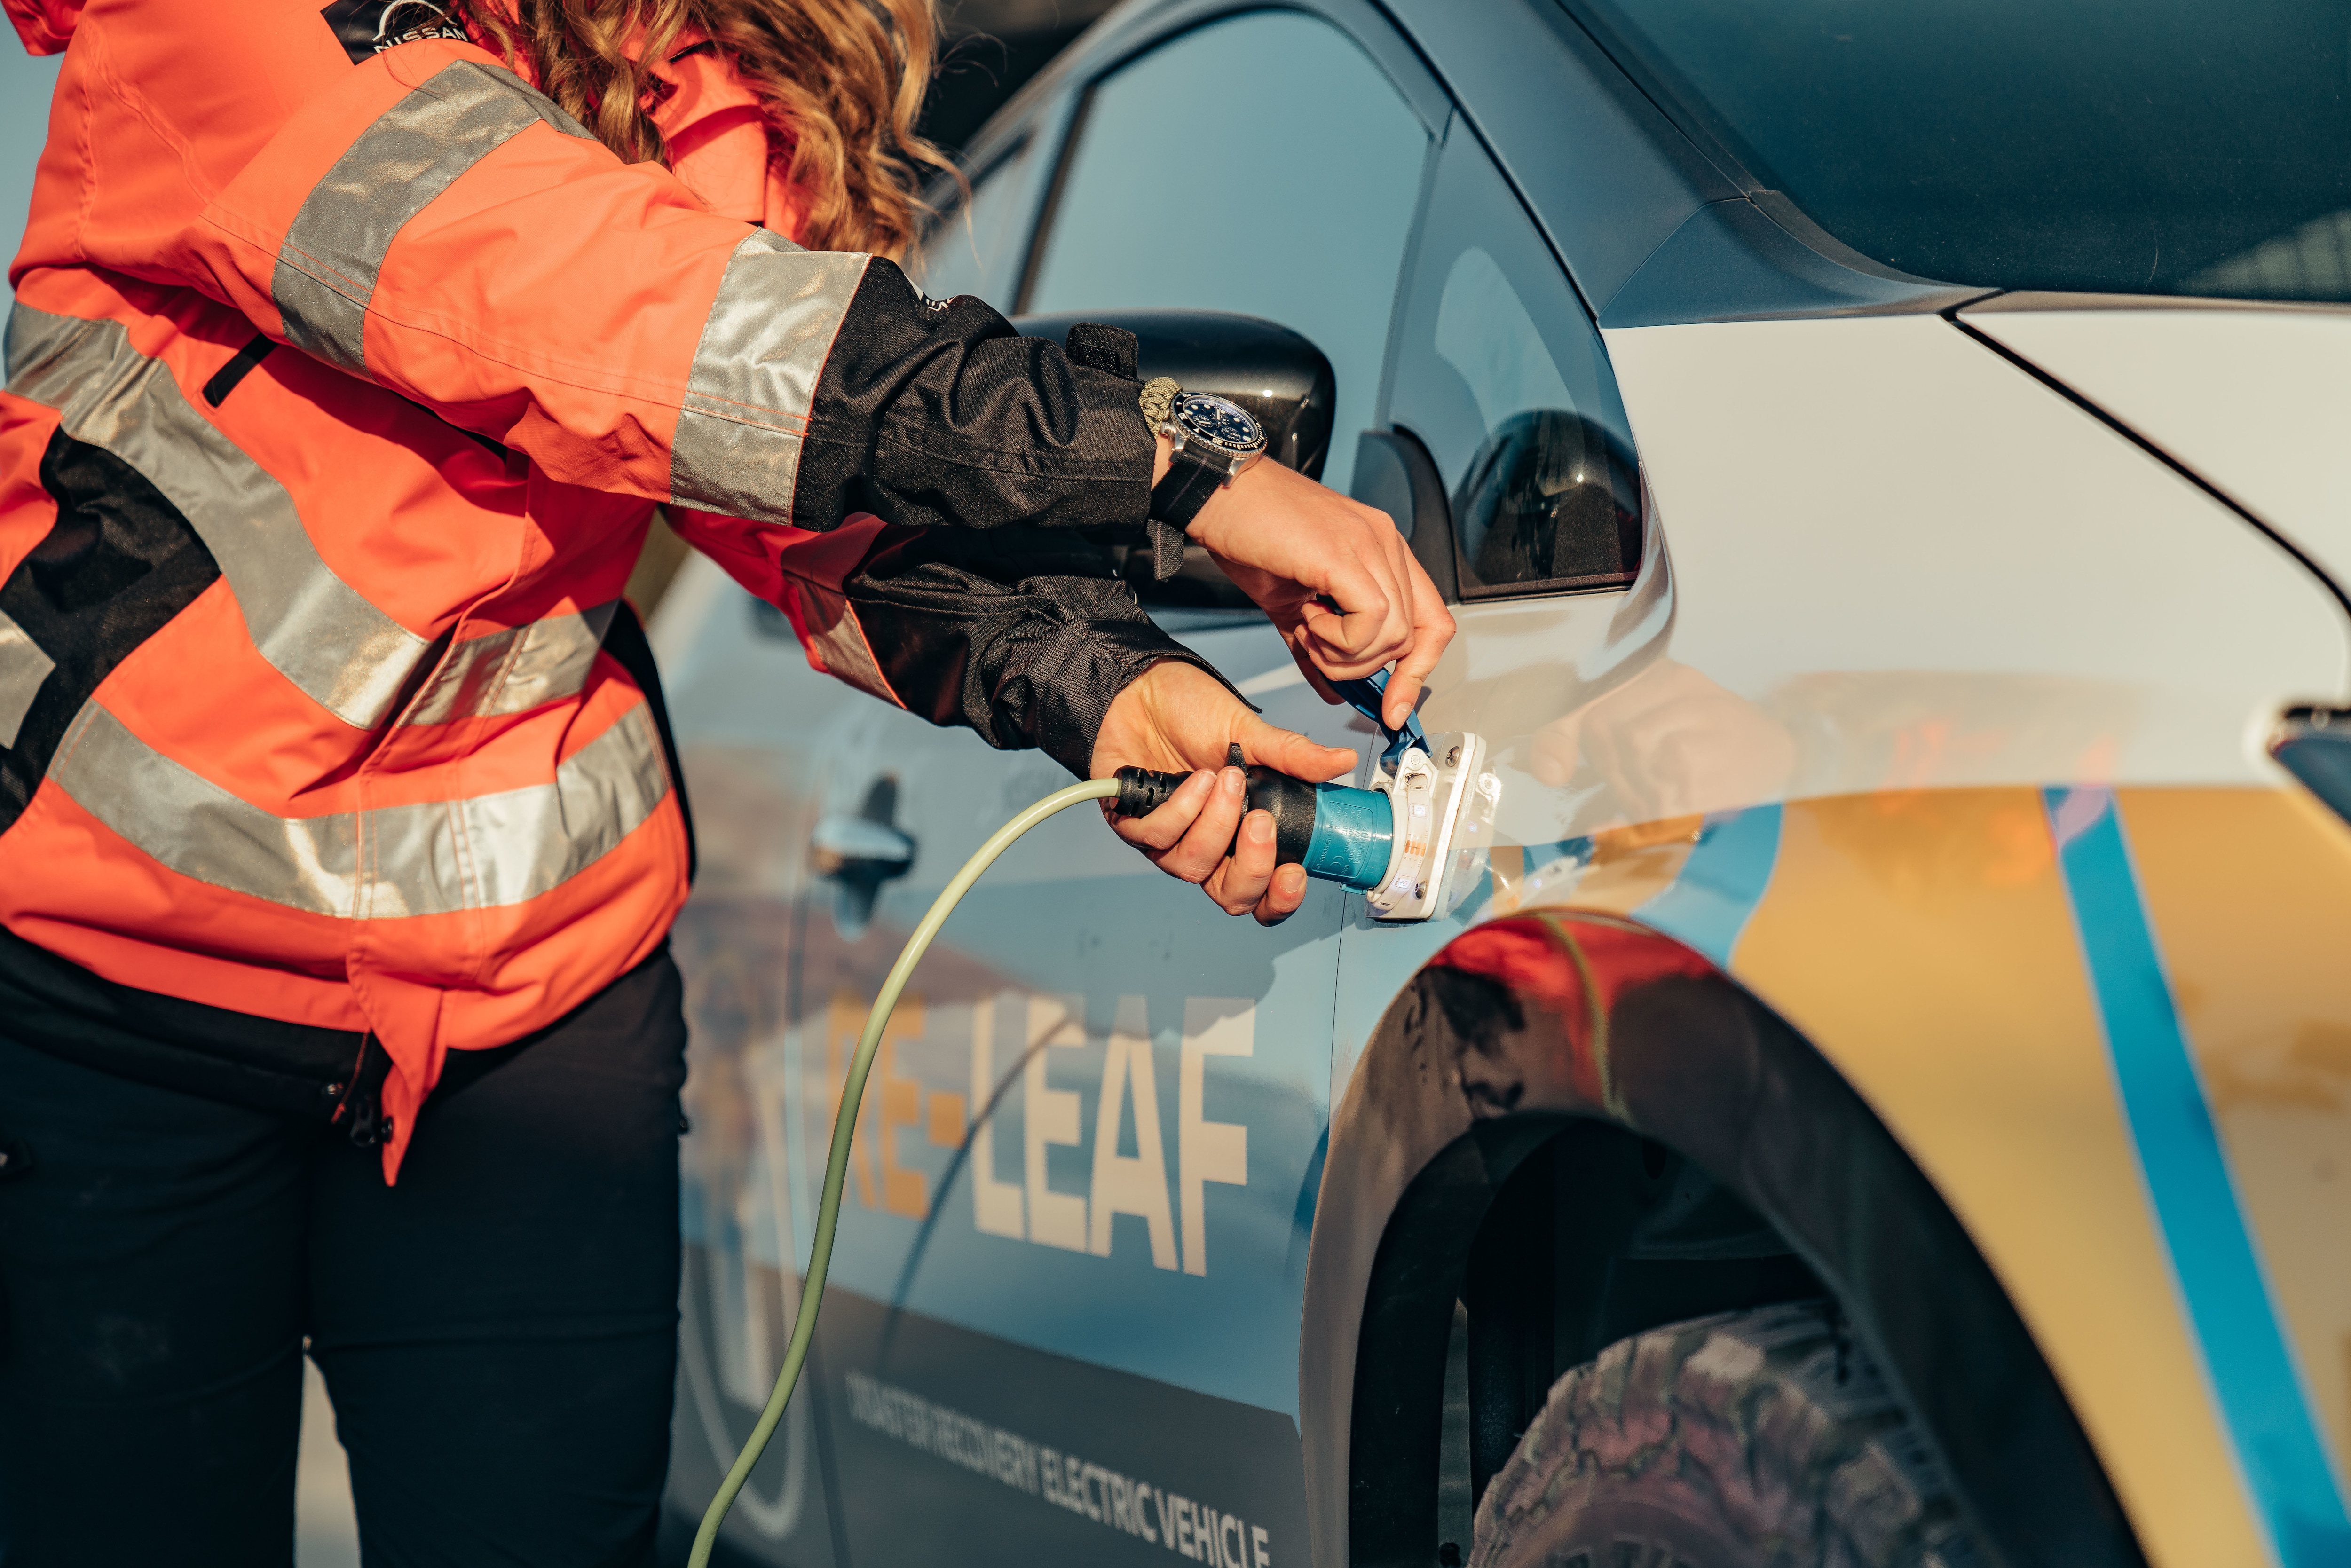 It features weatherproof plug sockets mounted on the outside of the body and this enables 110 to 230 volt devices to be powered by drawing energy from the vehicle's lithium-ion battery